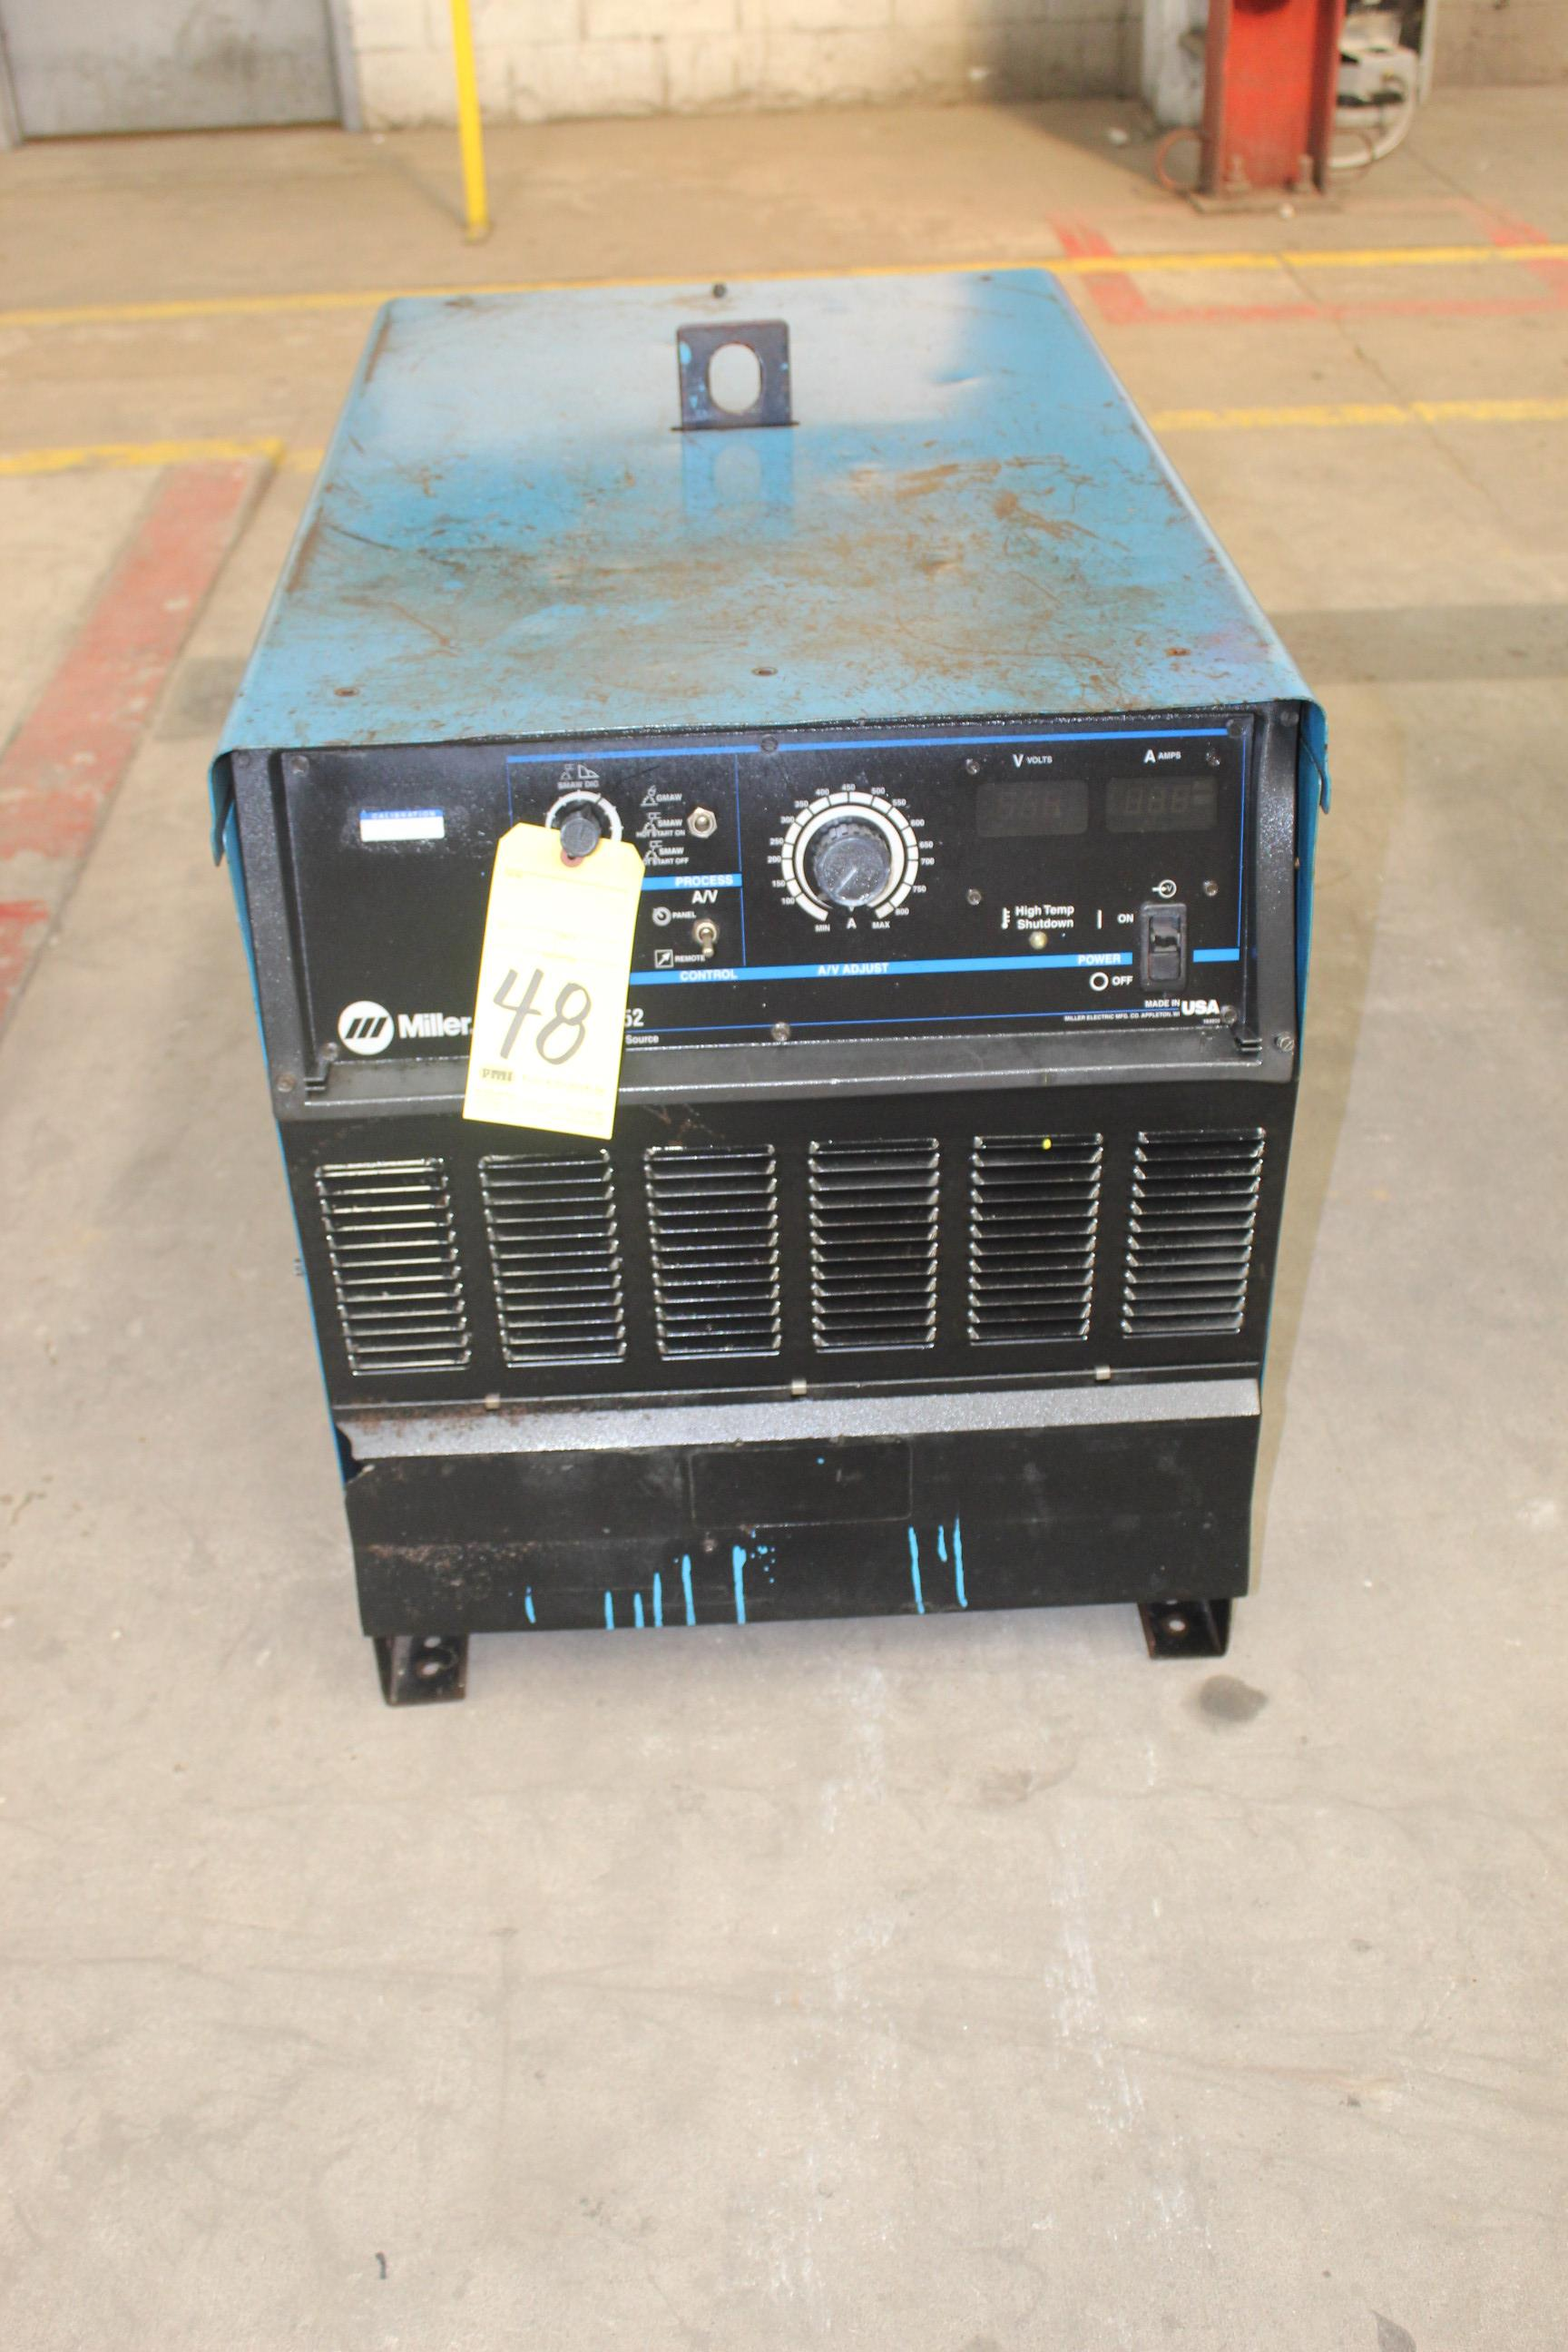 WELDING MACHINE, MILLER MDL. DIMENSION 652, 650 amps @ 44 v., 100% duty cycle, S/N LC618990